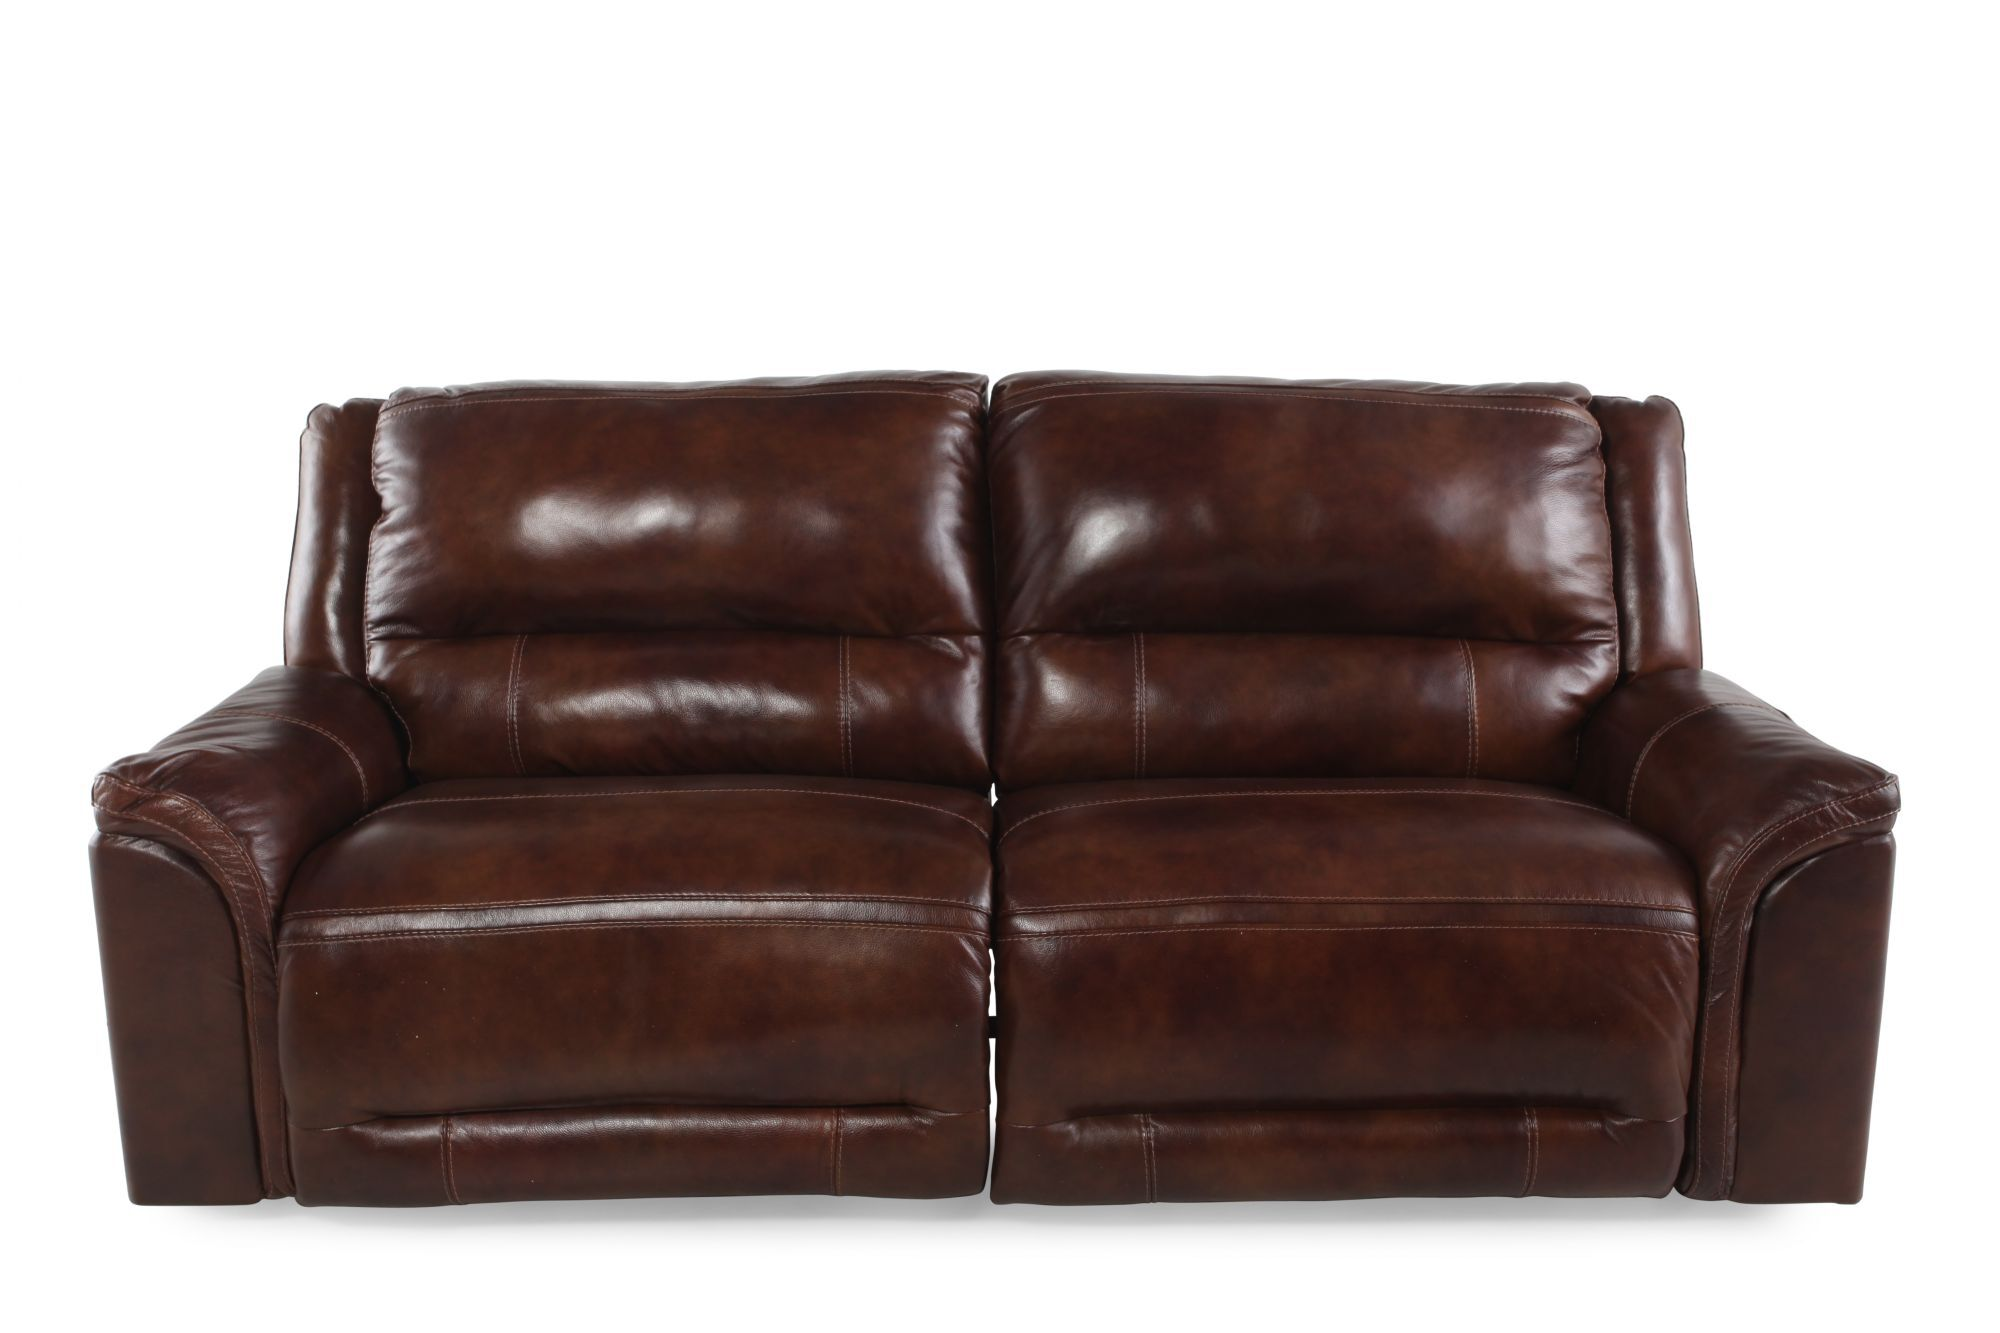 reclining sofa leather brown jennifer convertibles power in saddle mathis